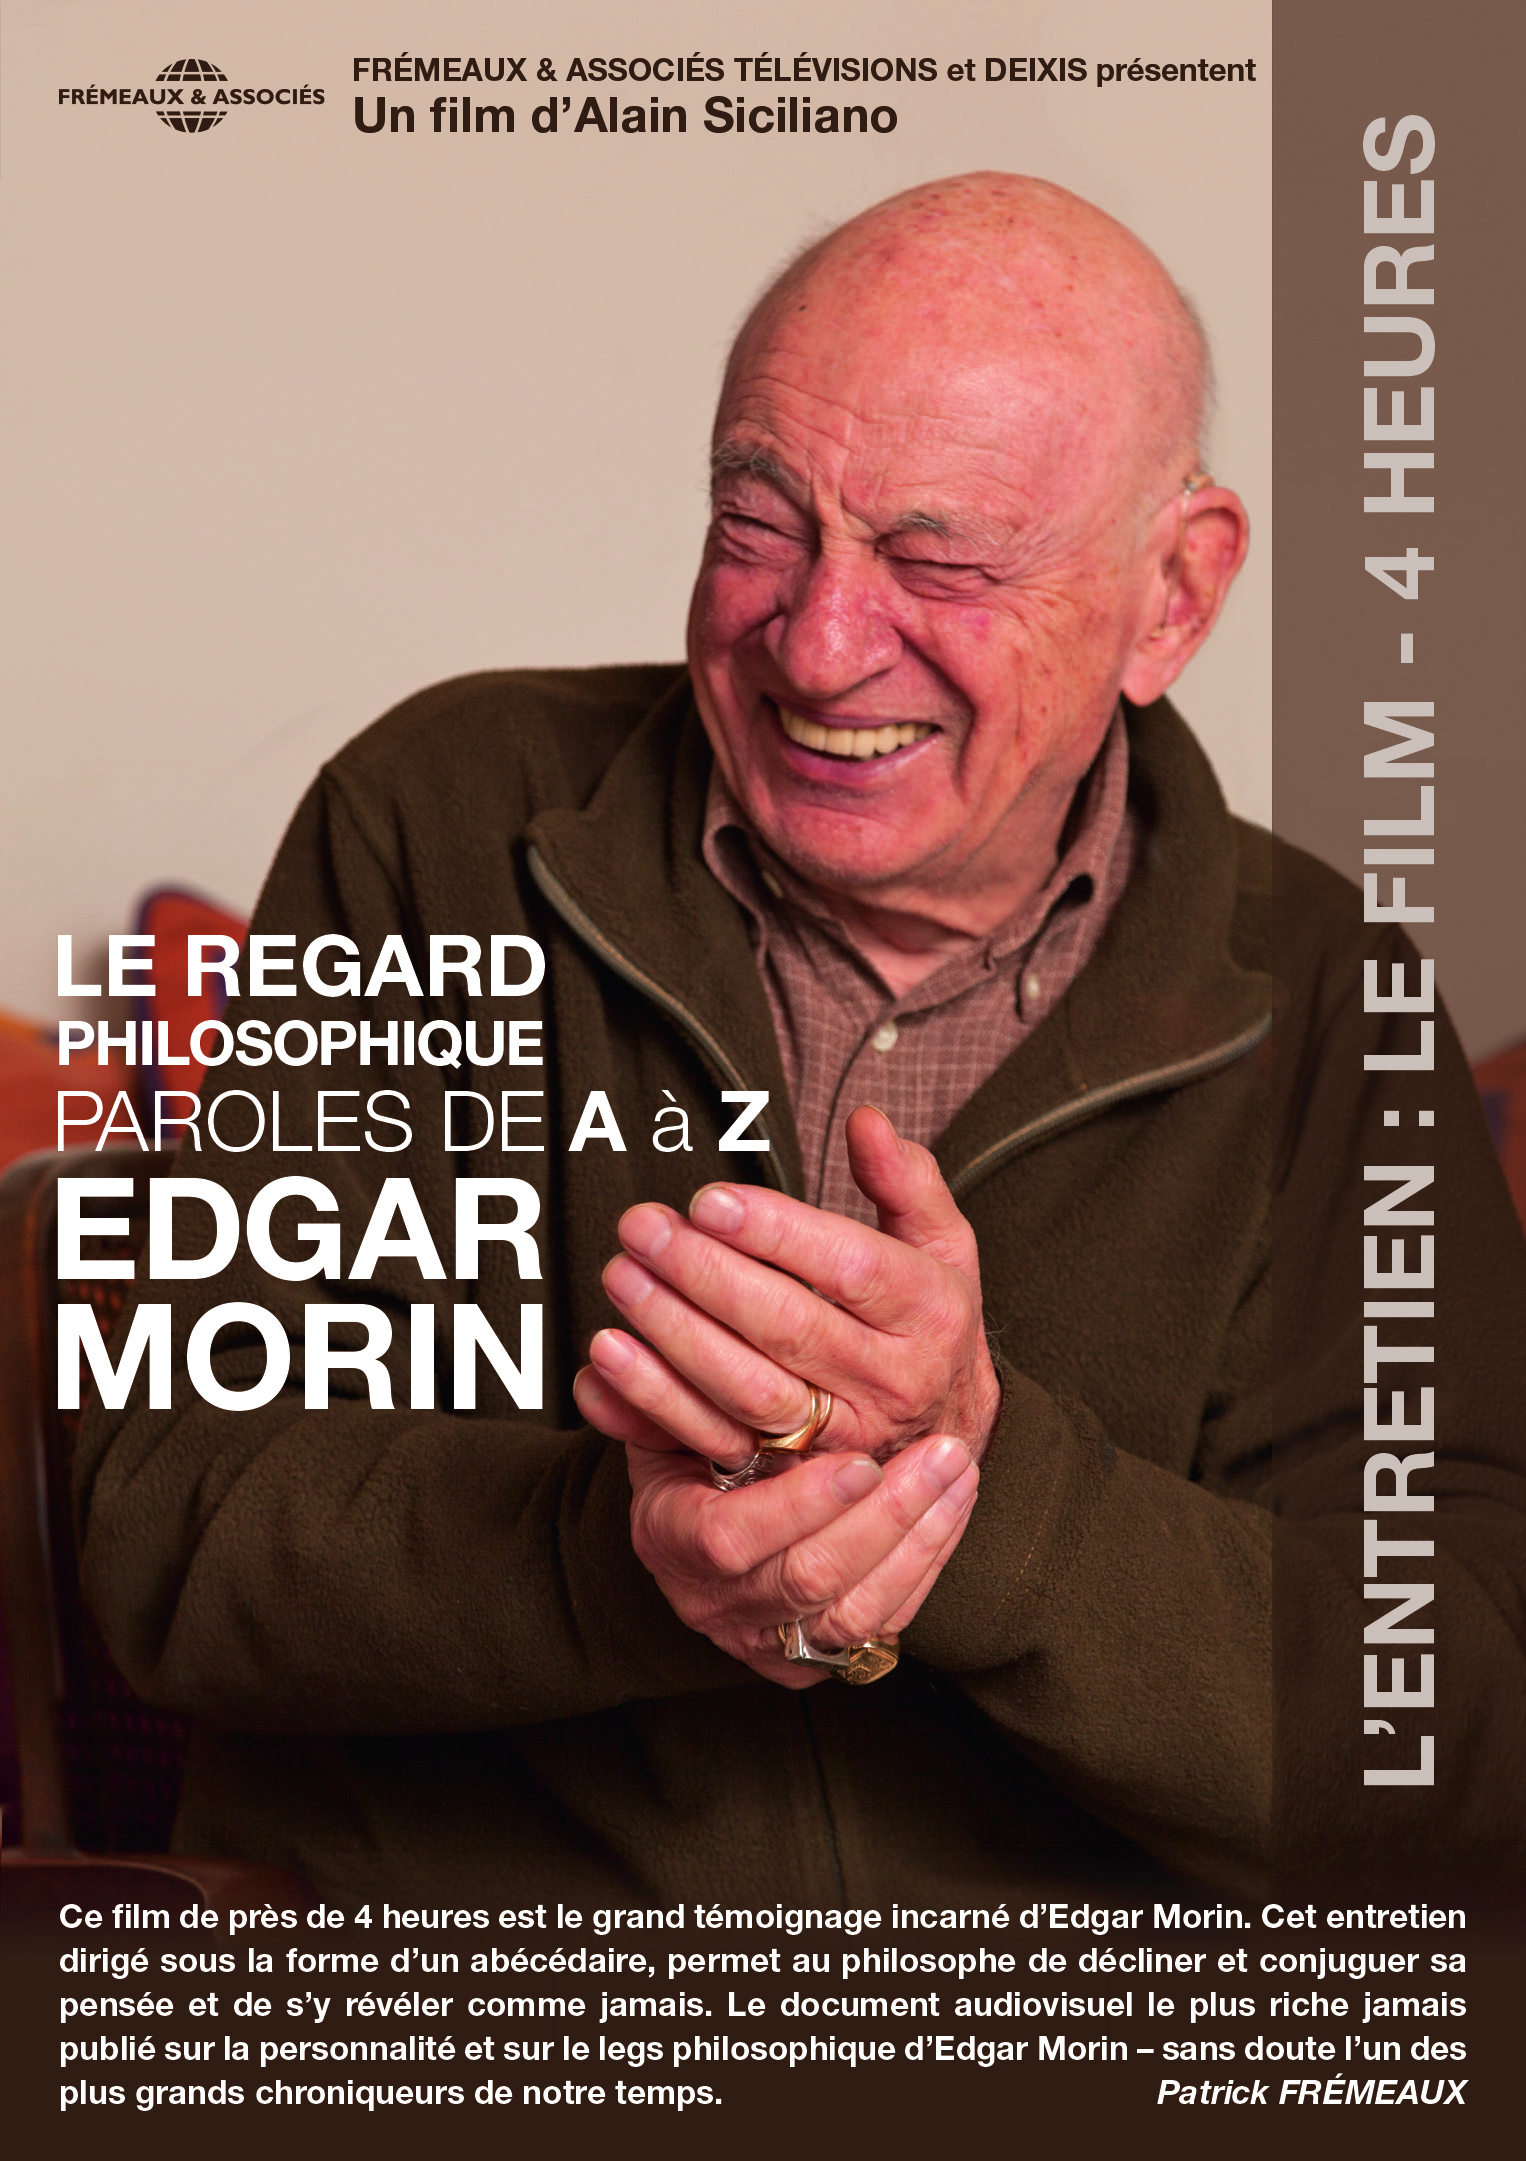 LE REGARD PHILOSOPHIQUE : PAROLES DE A A Z - UN FILM D ALAIN SICILIANO (DOUBLE DVD)